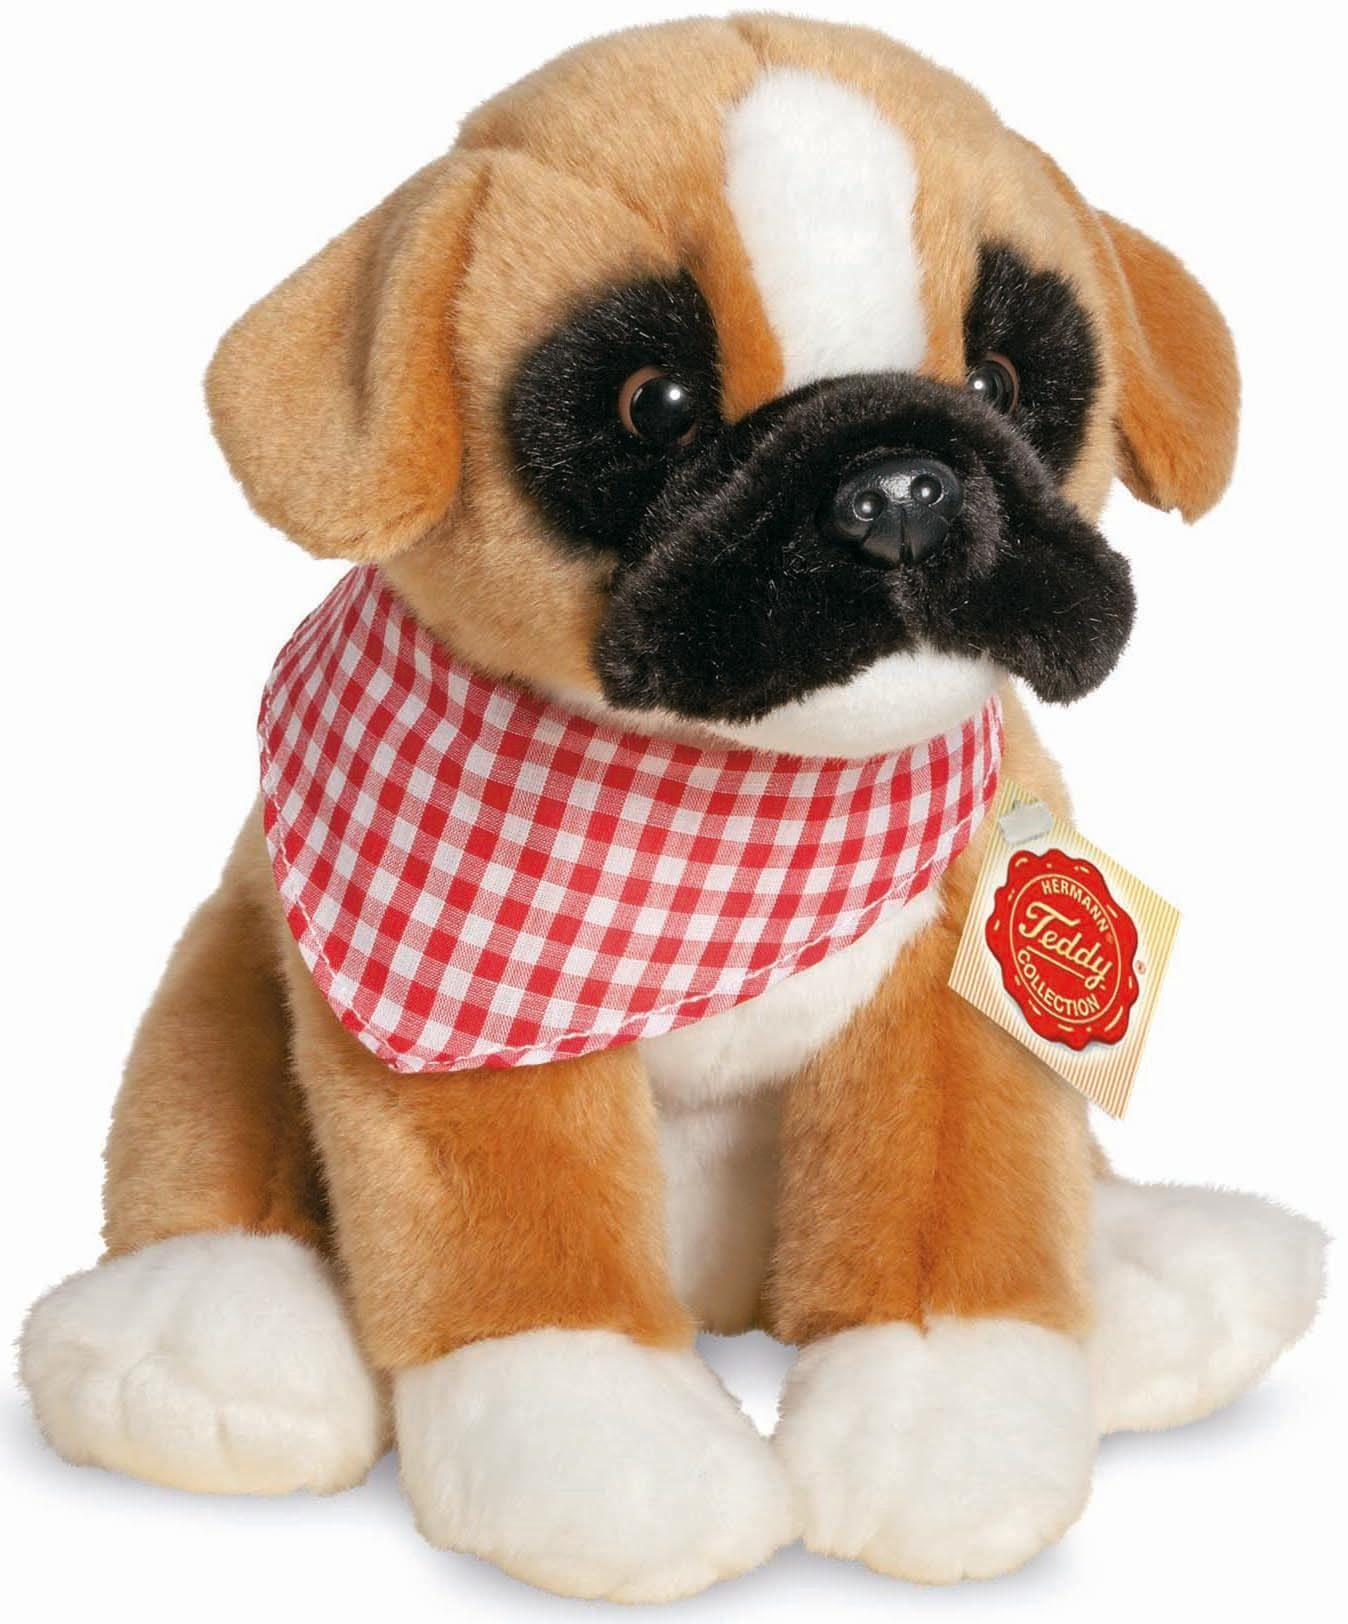 Teddy Hermann® COLLECTION Plüschtier Hund, »Boxer, 24 cm«